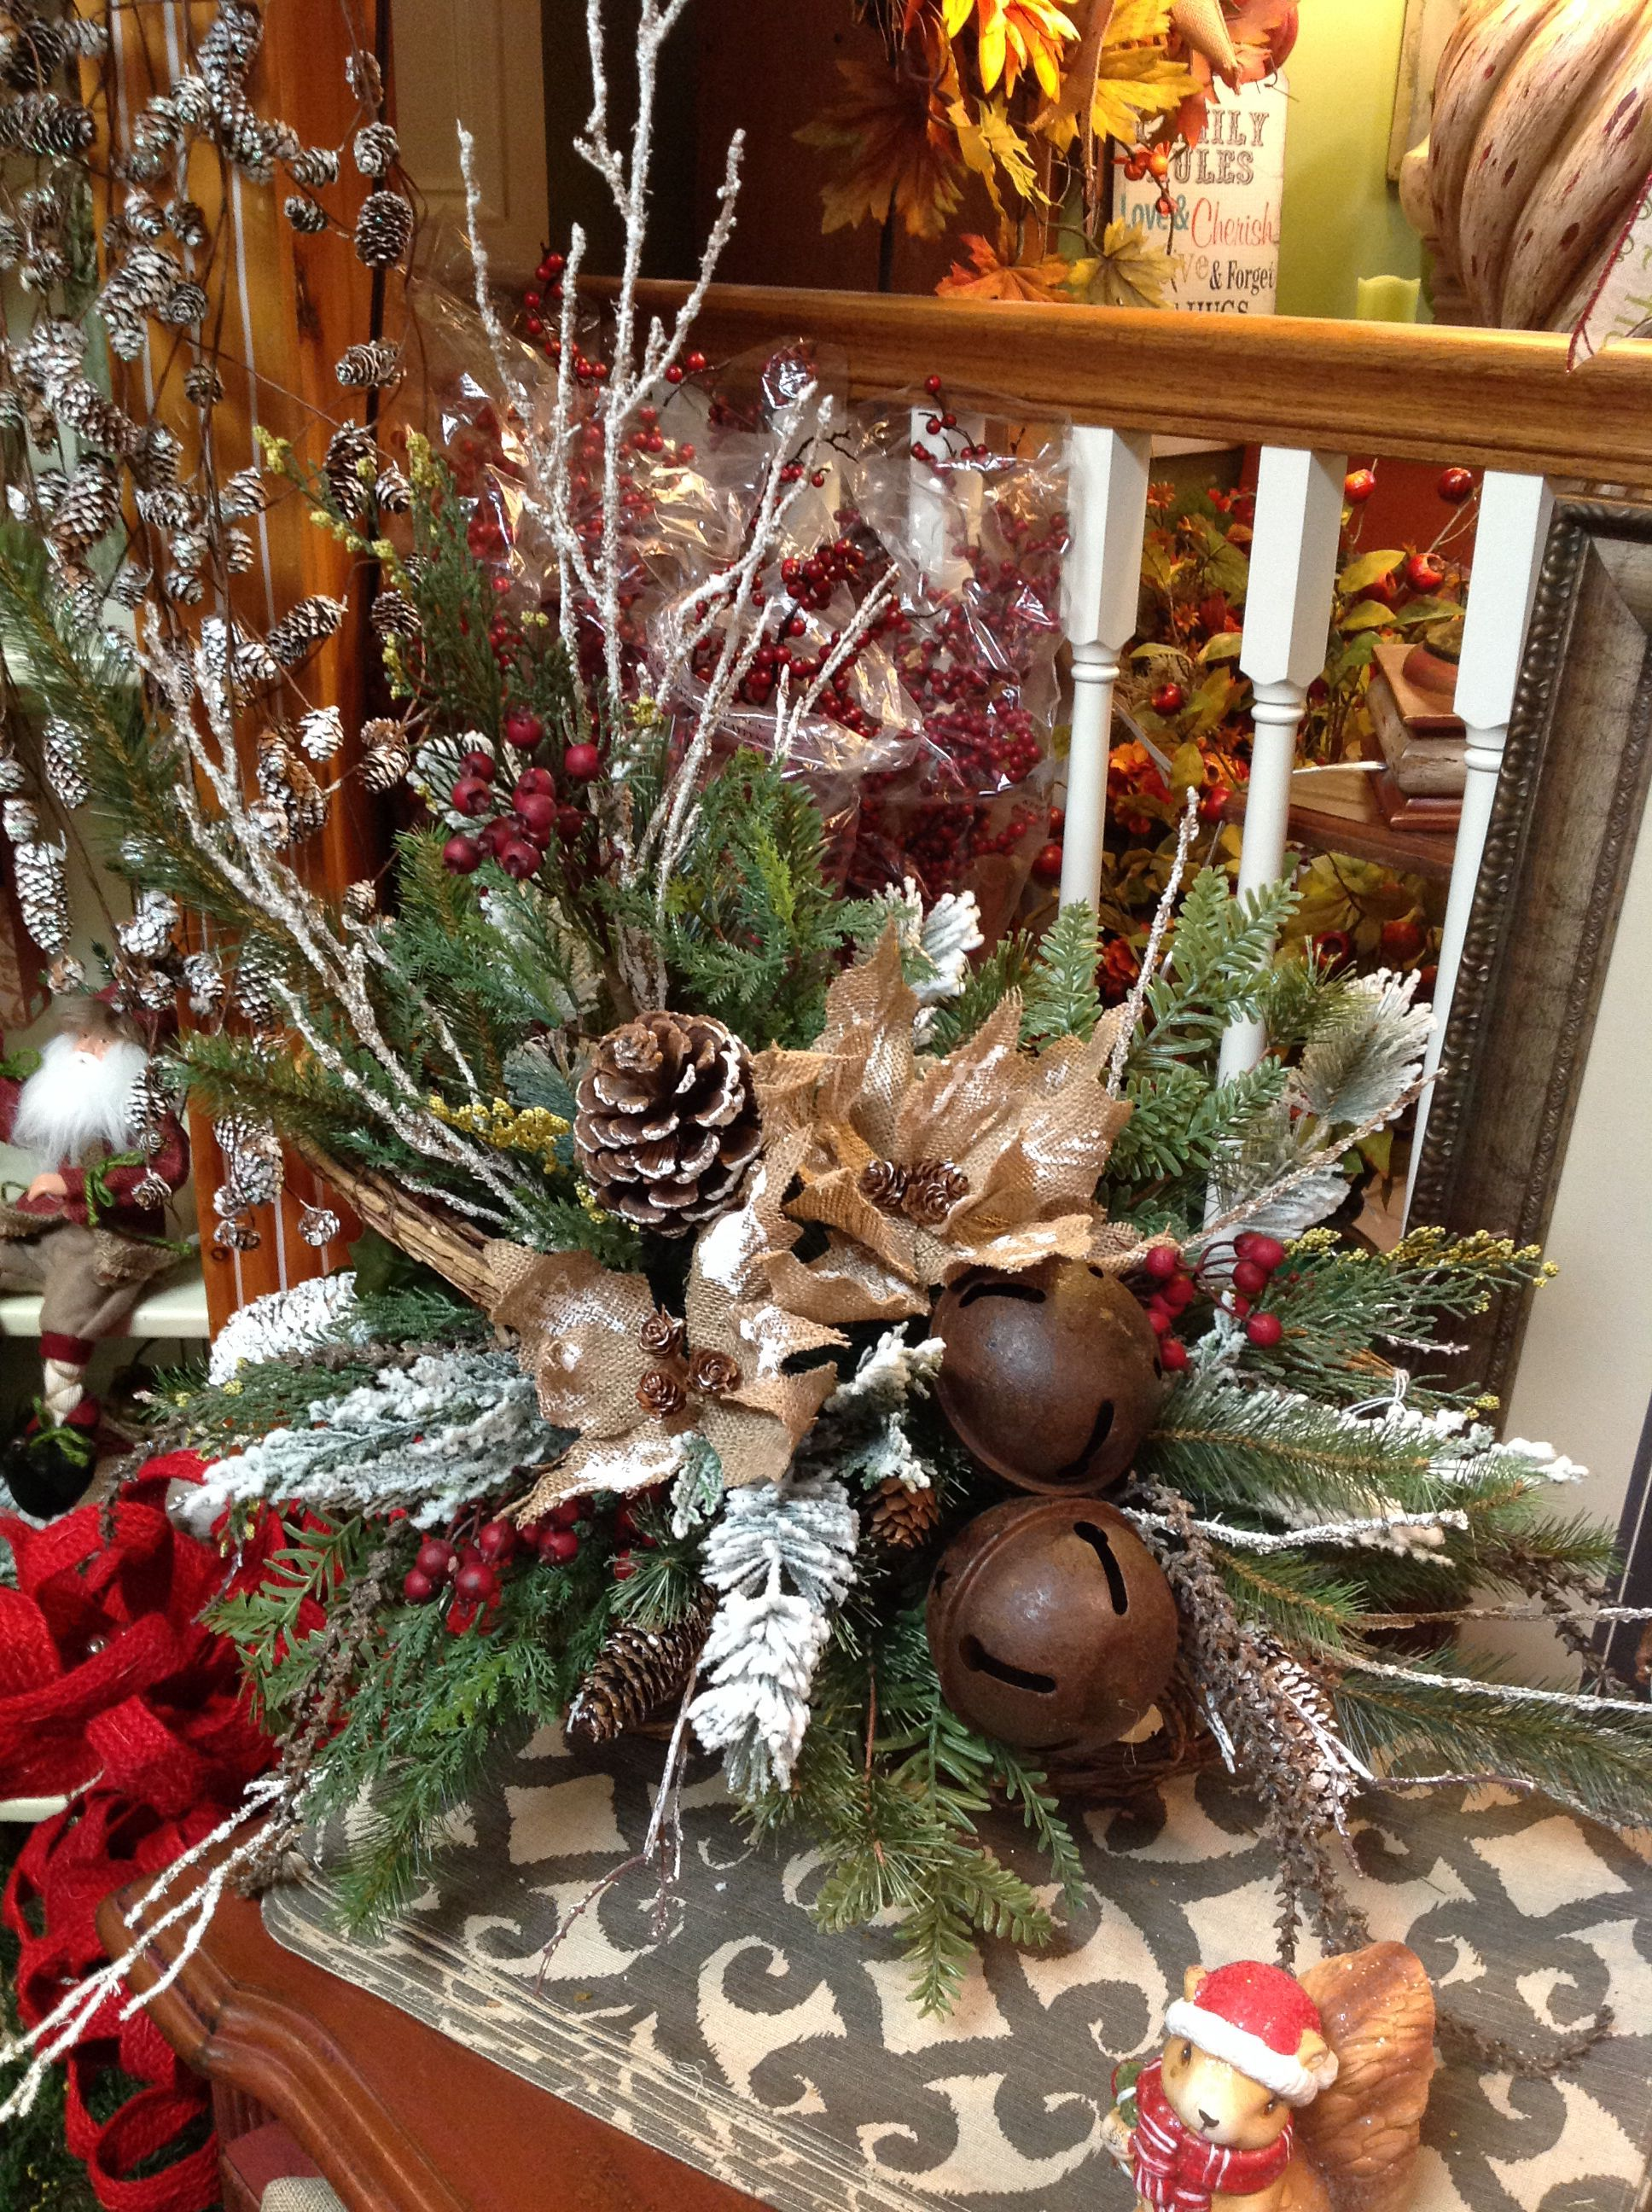 Rustic Christmas Floral Christmas Flower Decorations Storing Christmas Decorations Christmas Table Decorations Diy